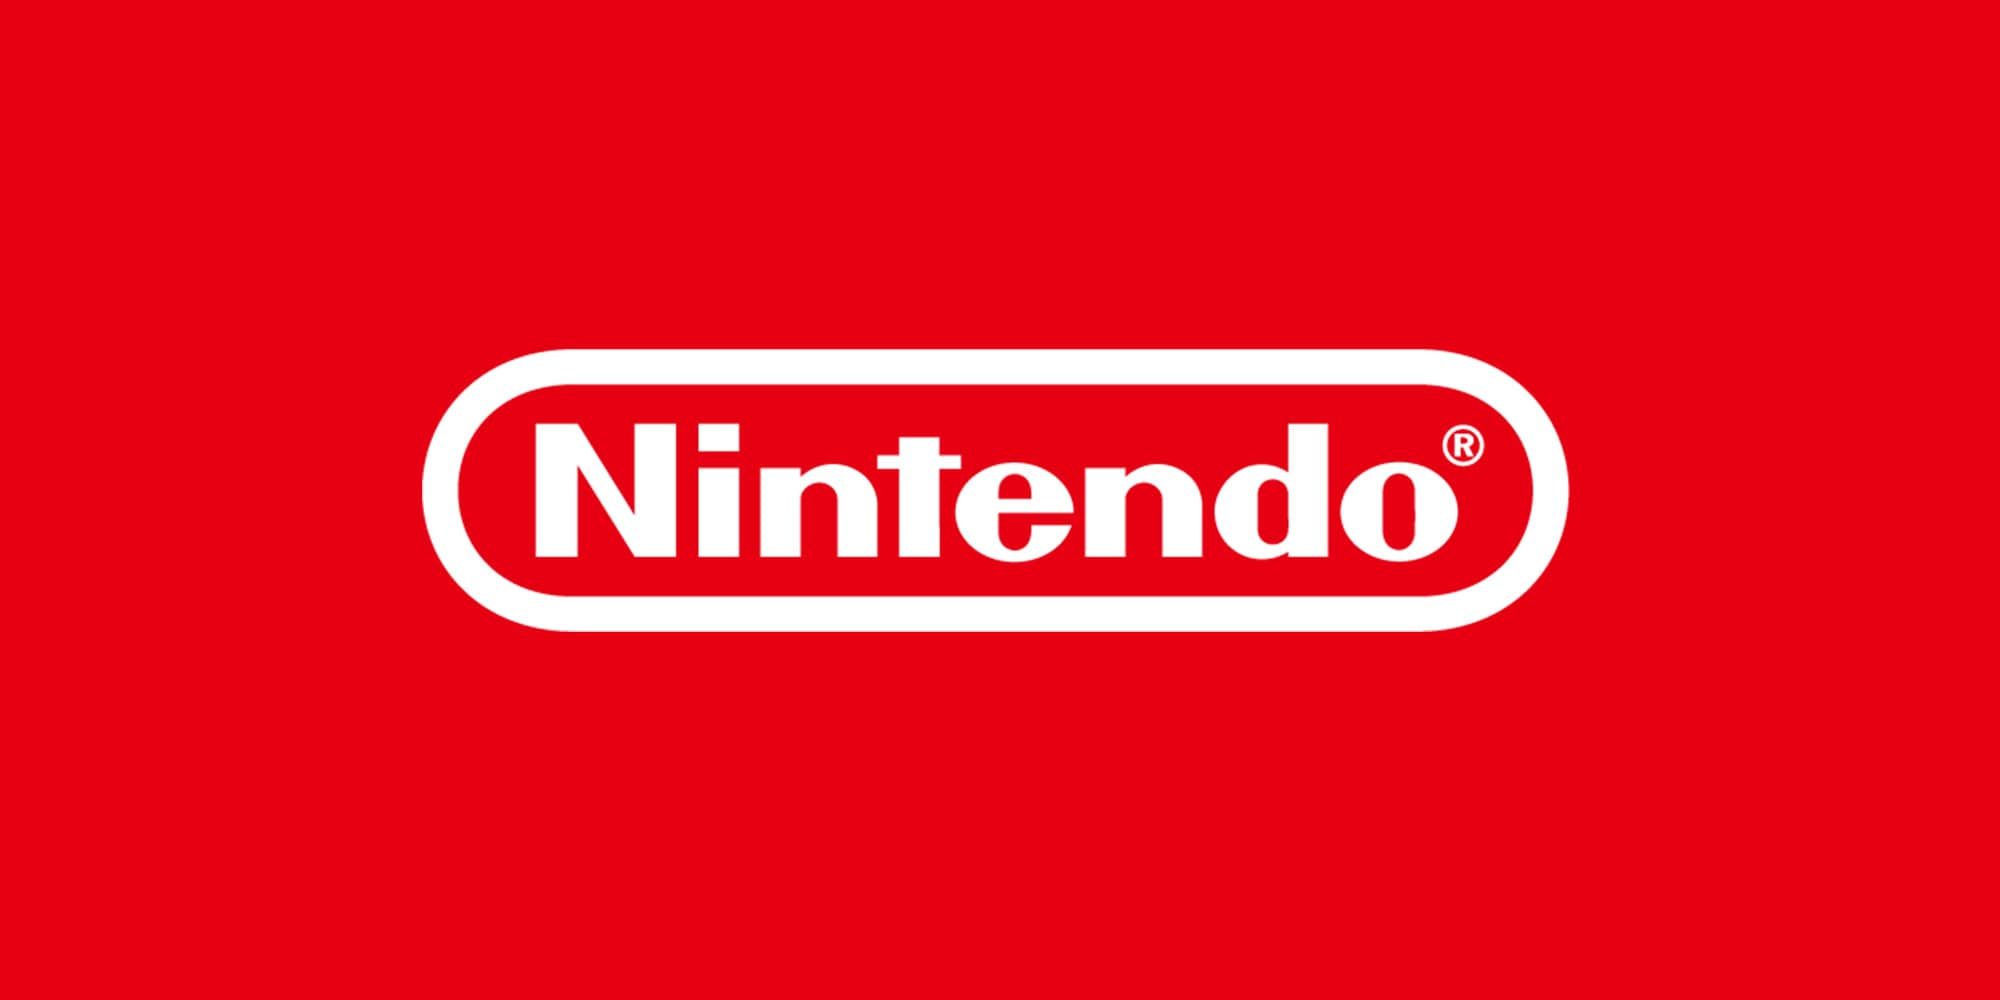 When Nintendo Was Founded